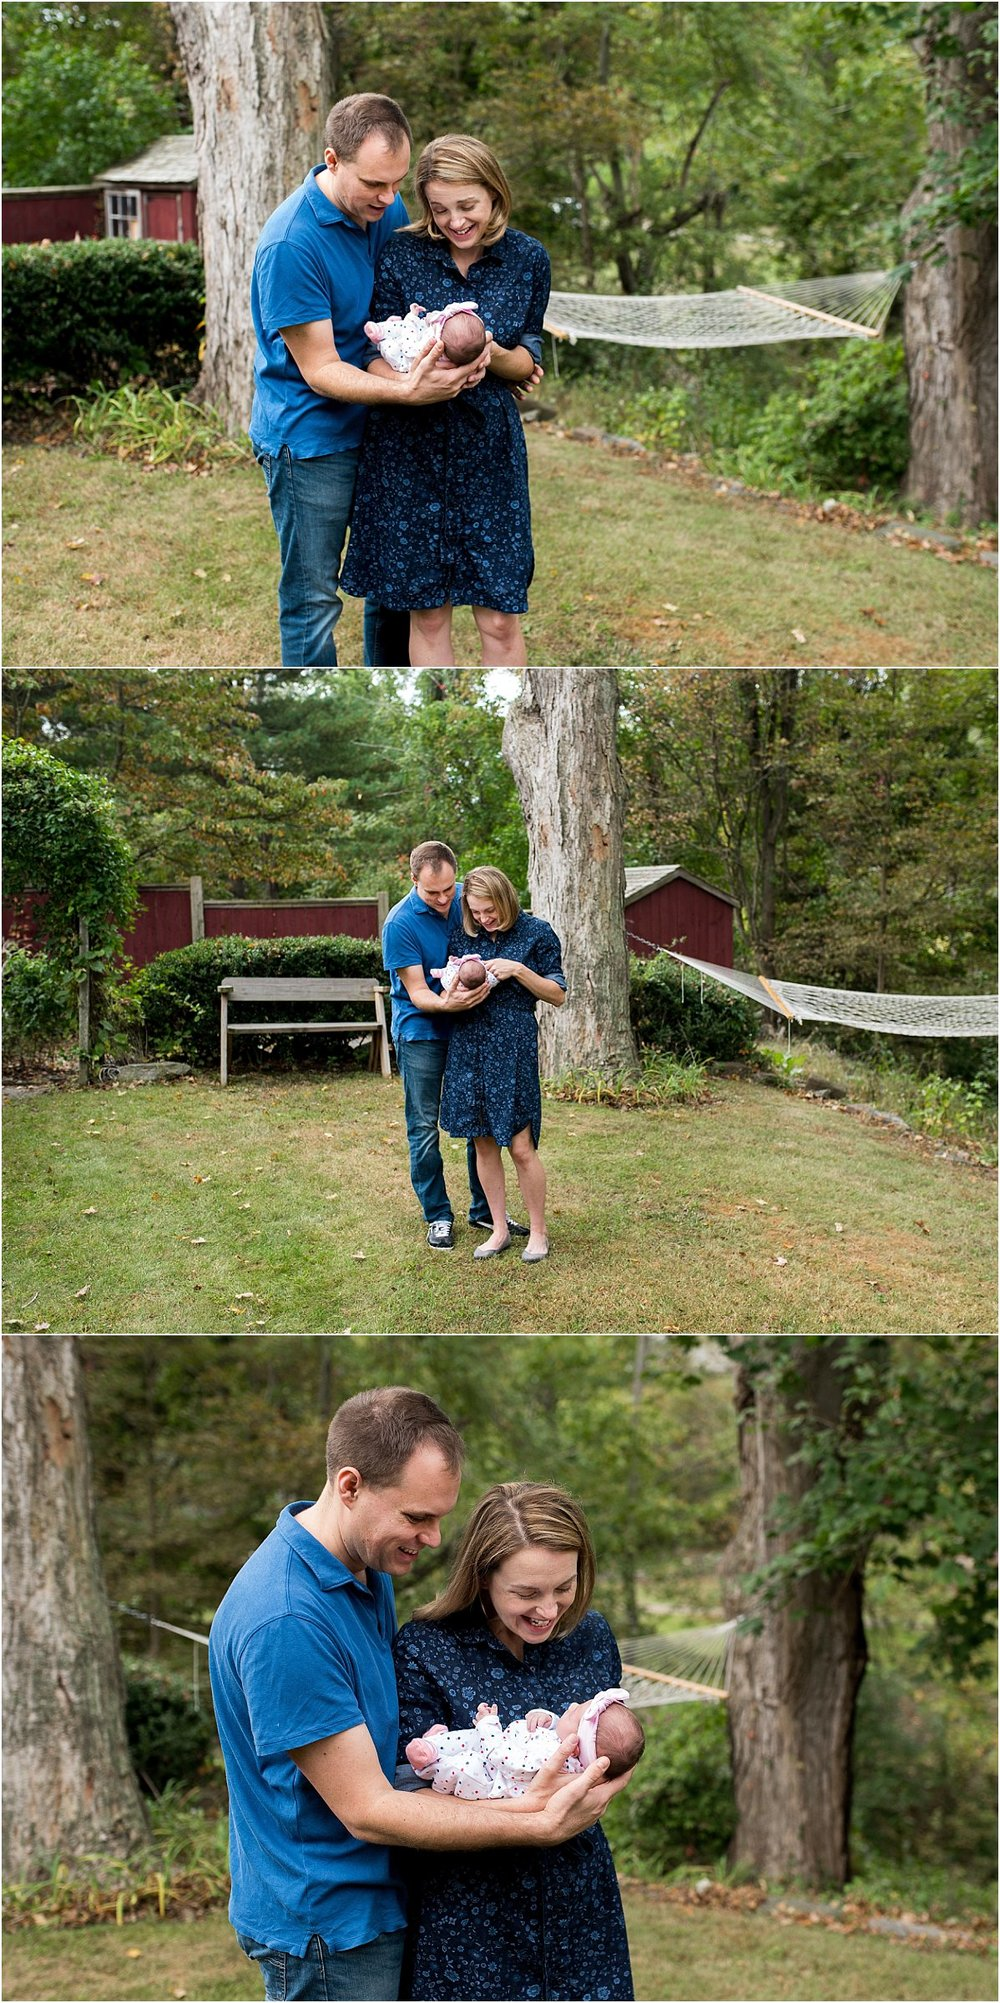 mom and dad with baby in yard. newborn photography ct